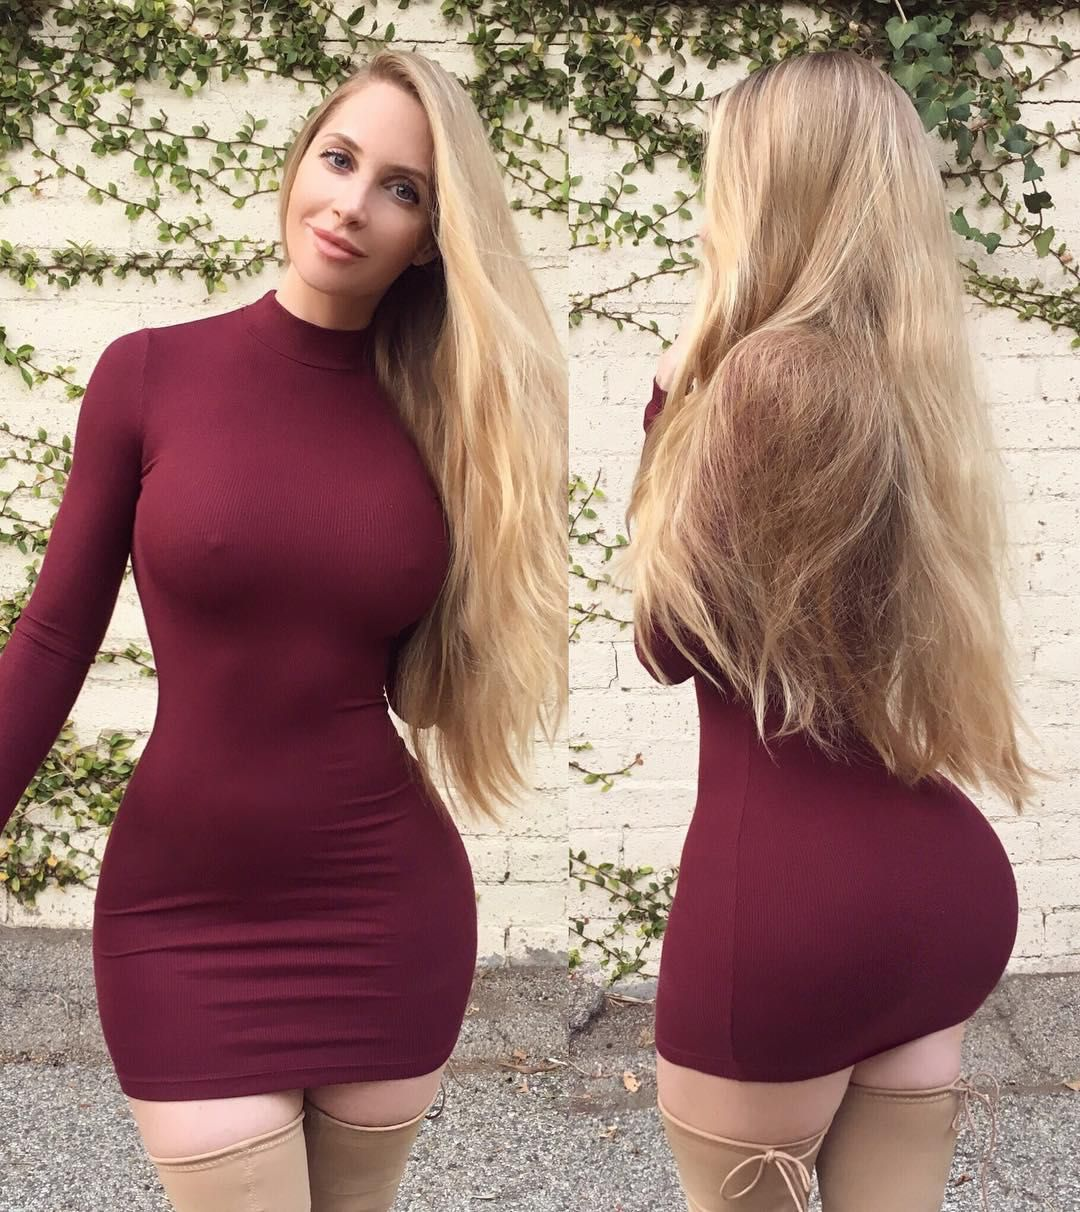 Amanda Elise Lee Cute Tight Dresses Tight Dresses Fashion